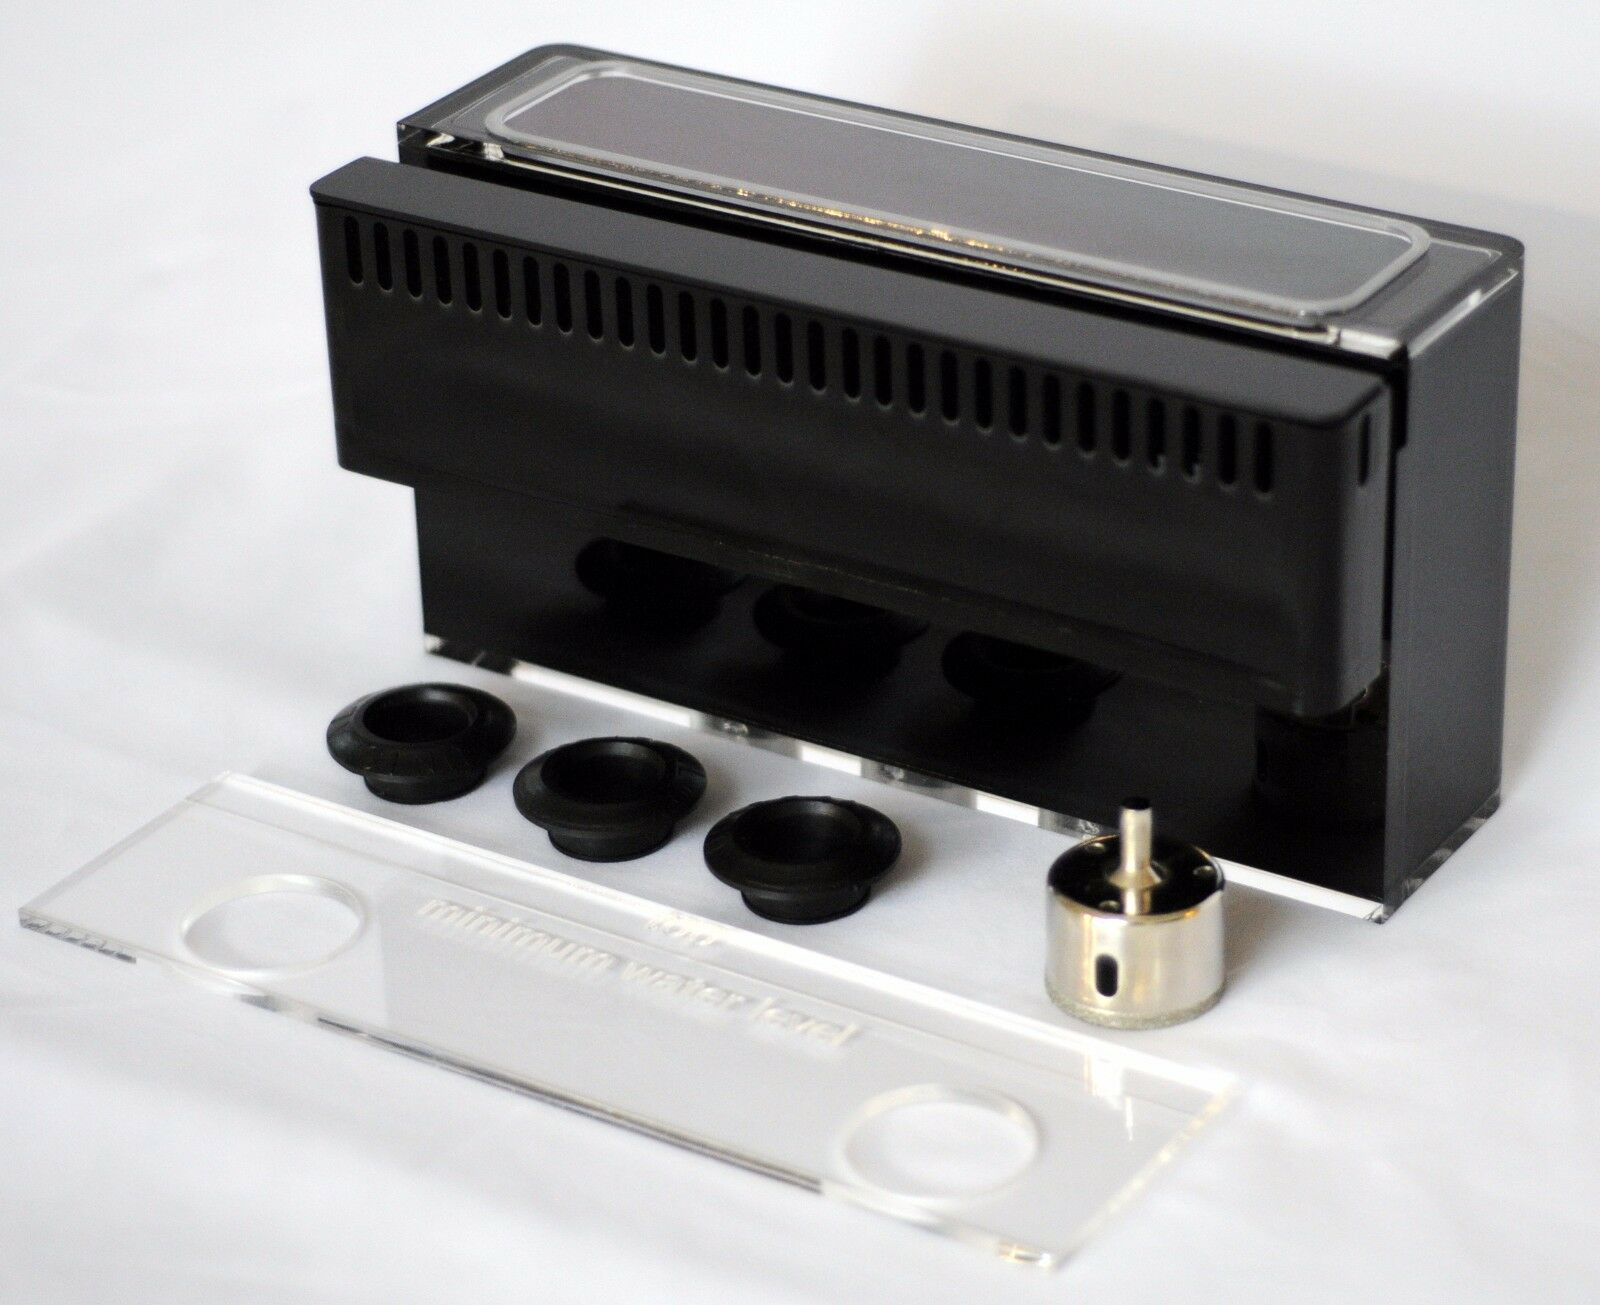 MODULAR MARINE 800 gph LOW PROFILE Overflow Box with REMOVABLE WEIR